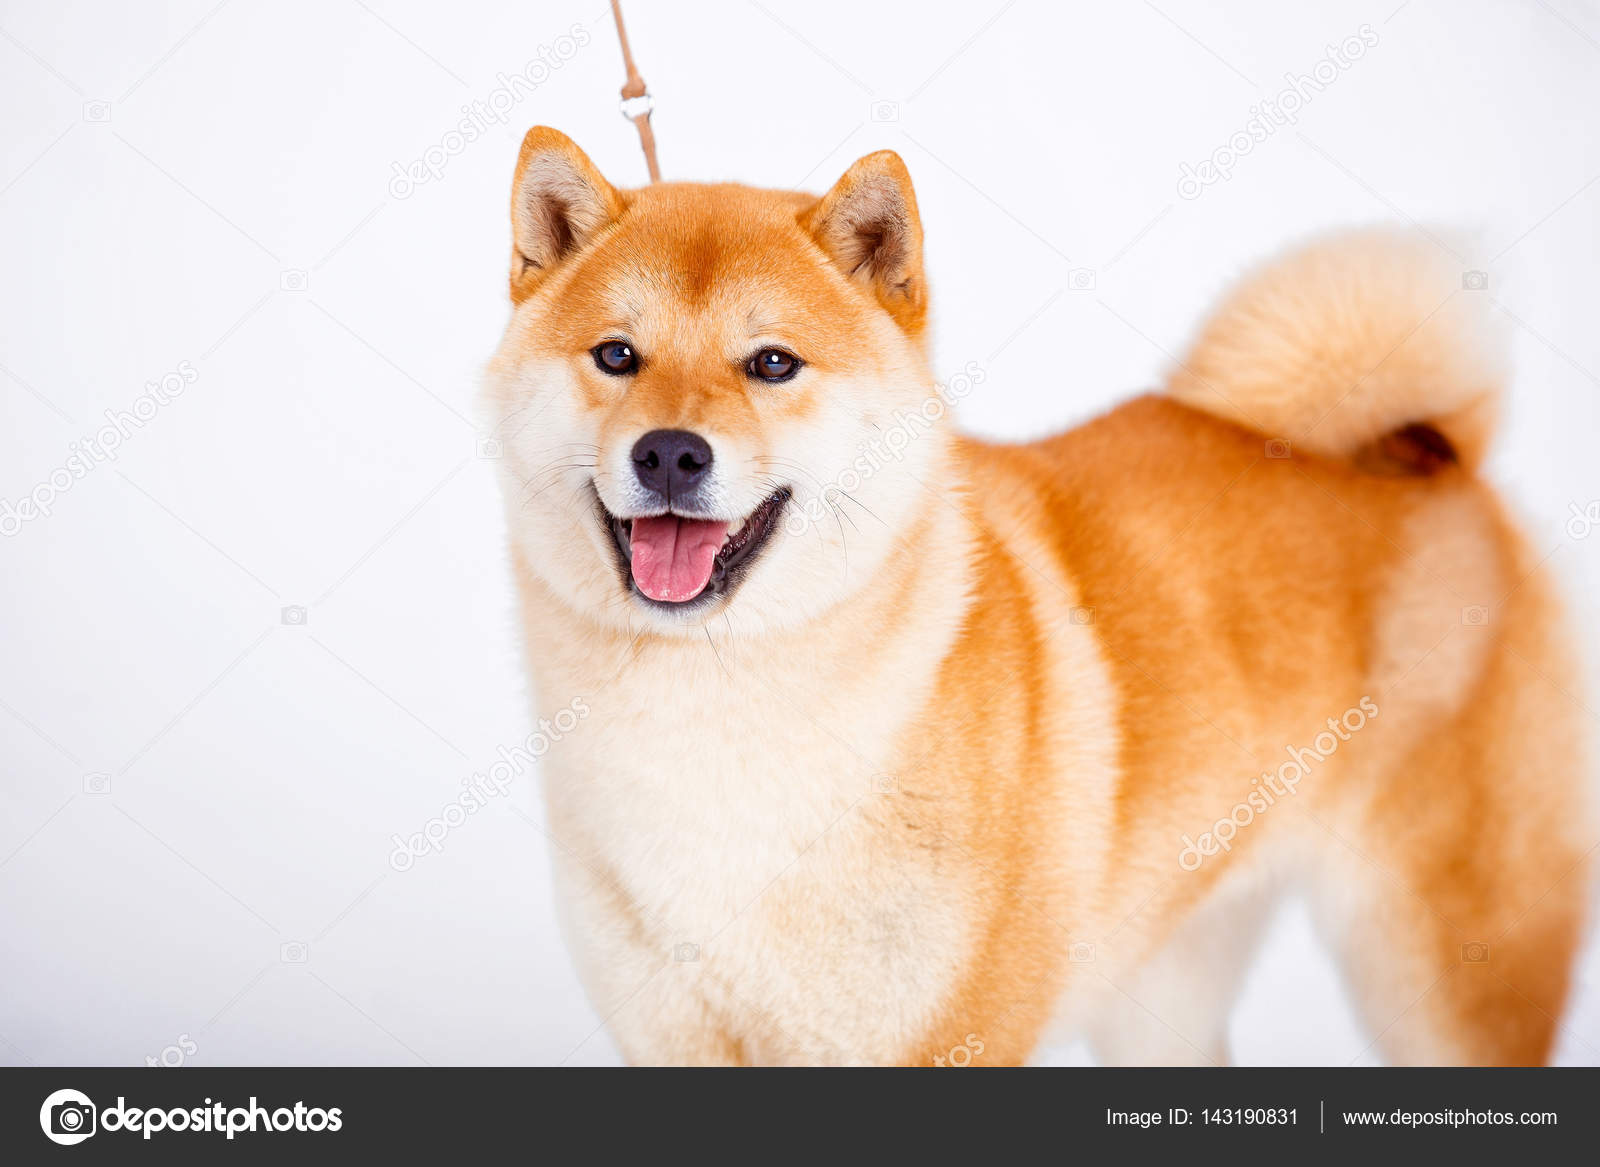 shiba inu hund auf wei em hintergrund stockfoto akbudak 143190831. Black Bedroom Furniture Sets. Home Design Ideas